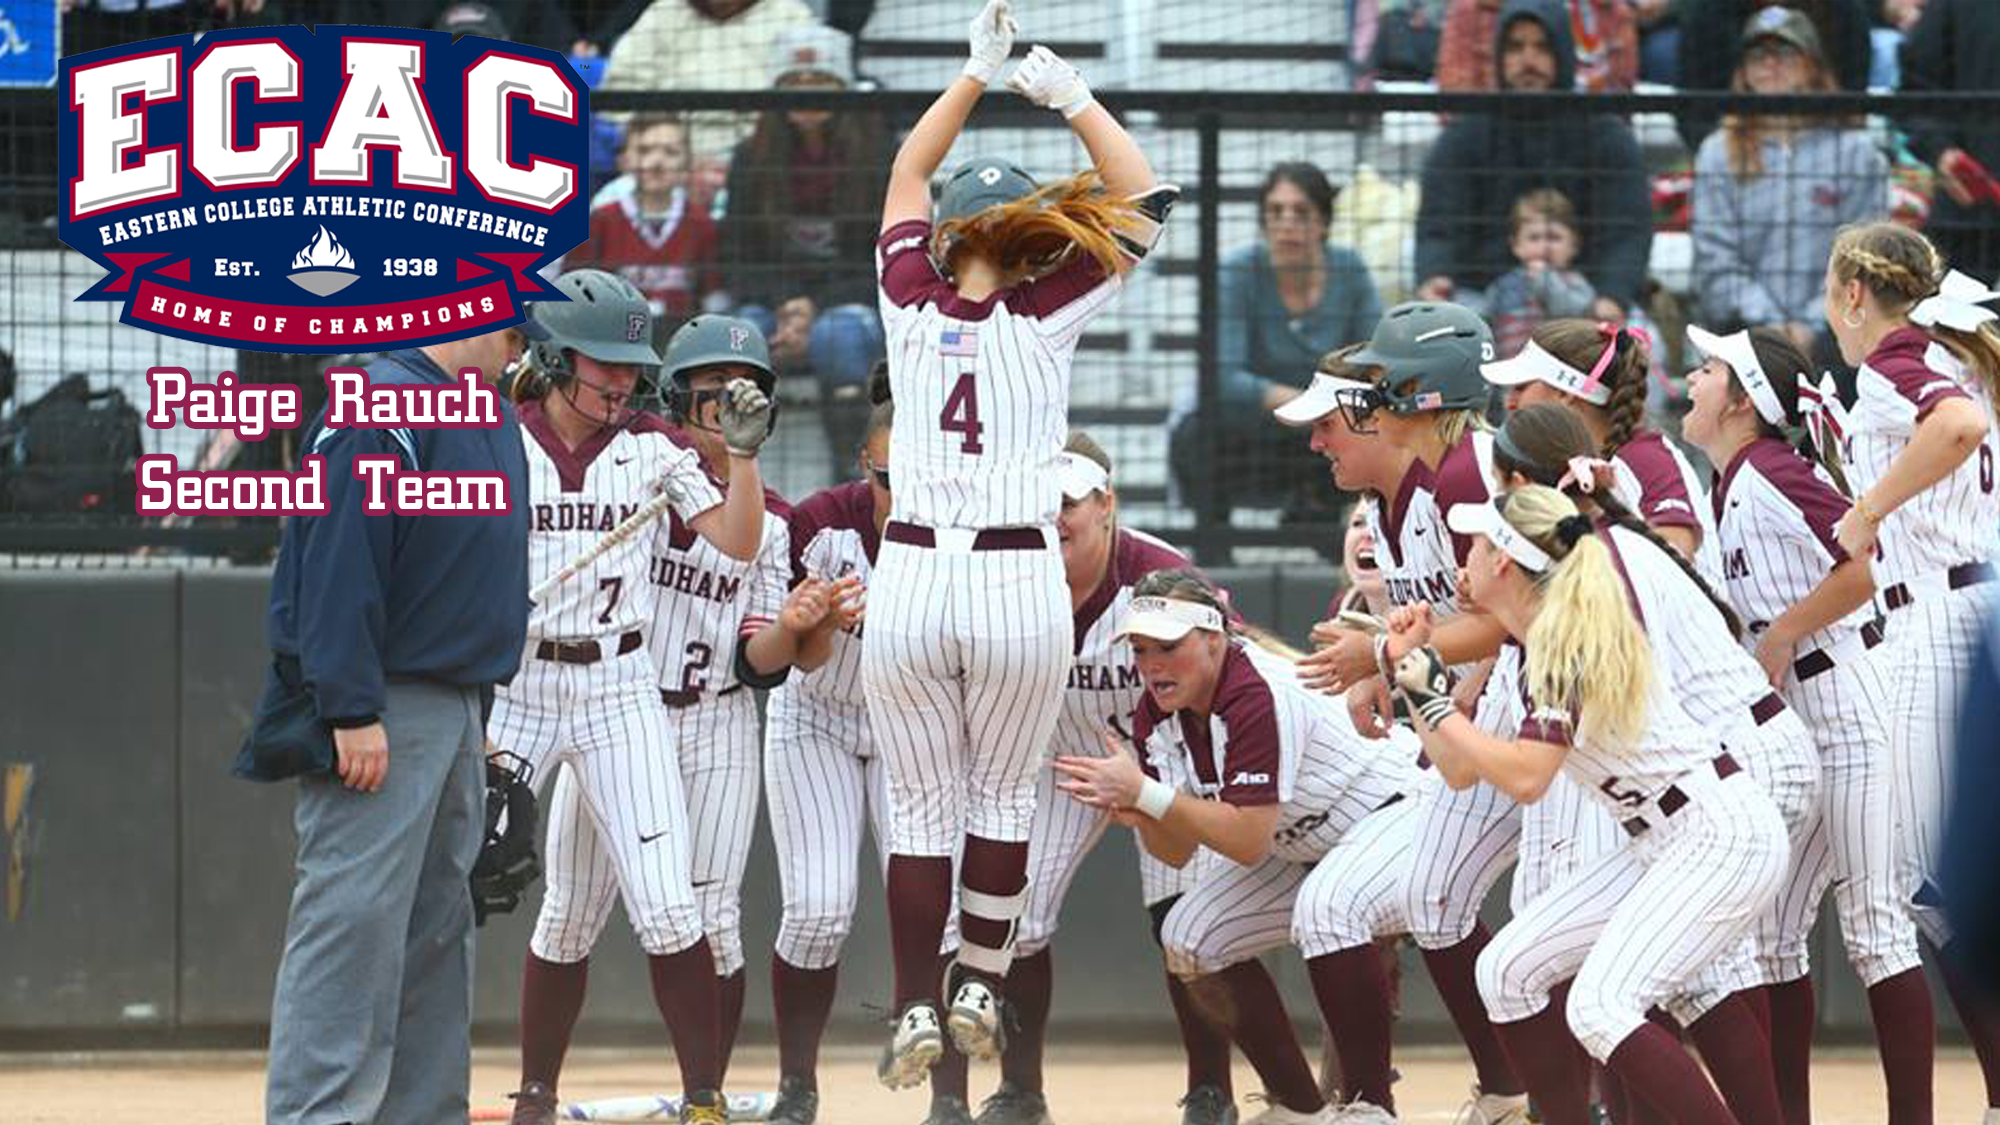 rauch named to ecac second team fordham athletics